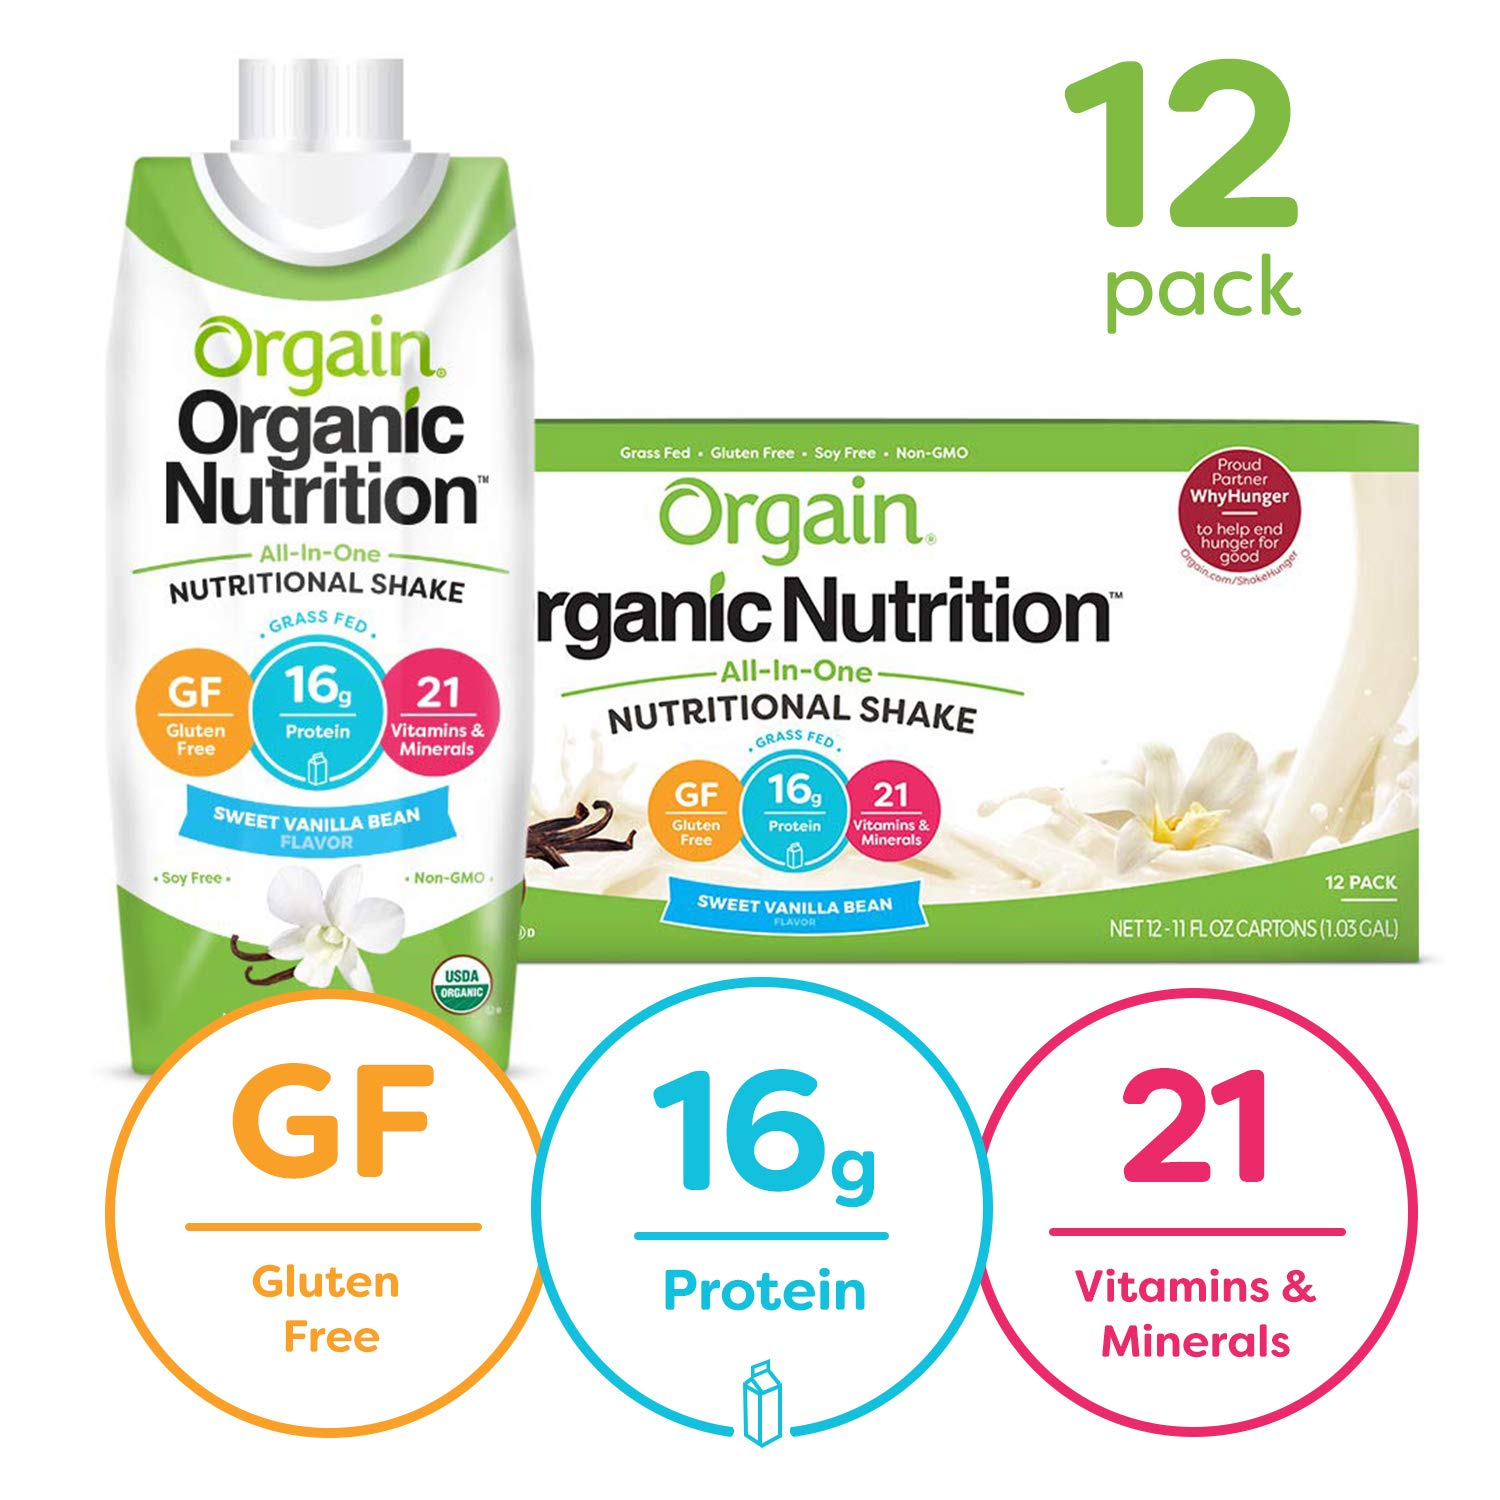 Orgain Organic Nutritional Shake, Sweet Vanilla Bean - Meal Replacement, 16g Protein, 21 Vitamins & Minerals, Gluten Free, Soy Free, Kosher, Non-GMO, 11 Ounce, 12 Count (Packaging May Vary) by Orgain